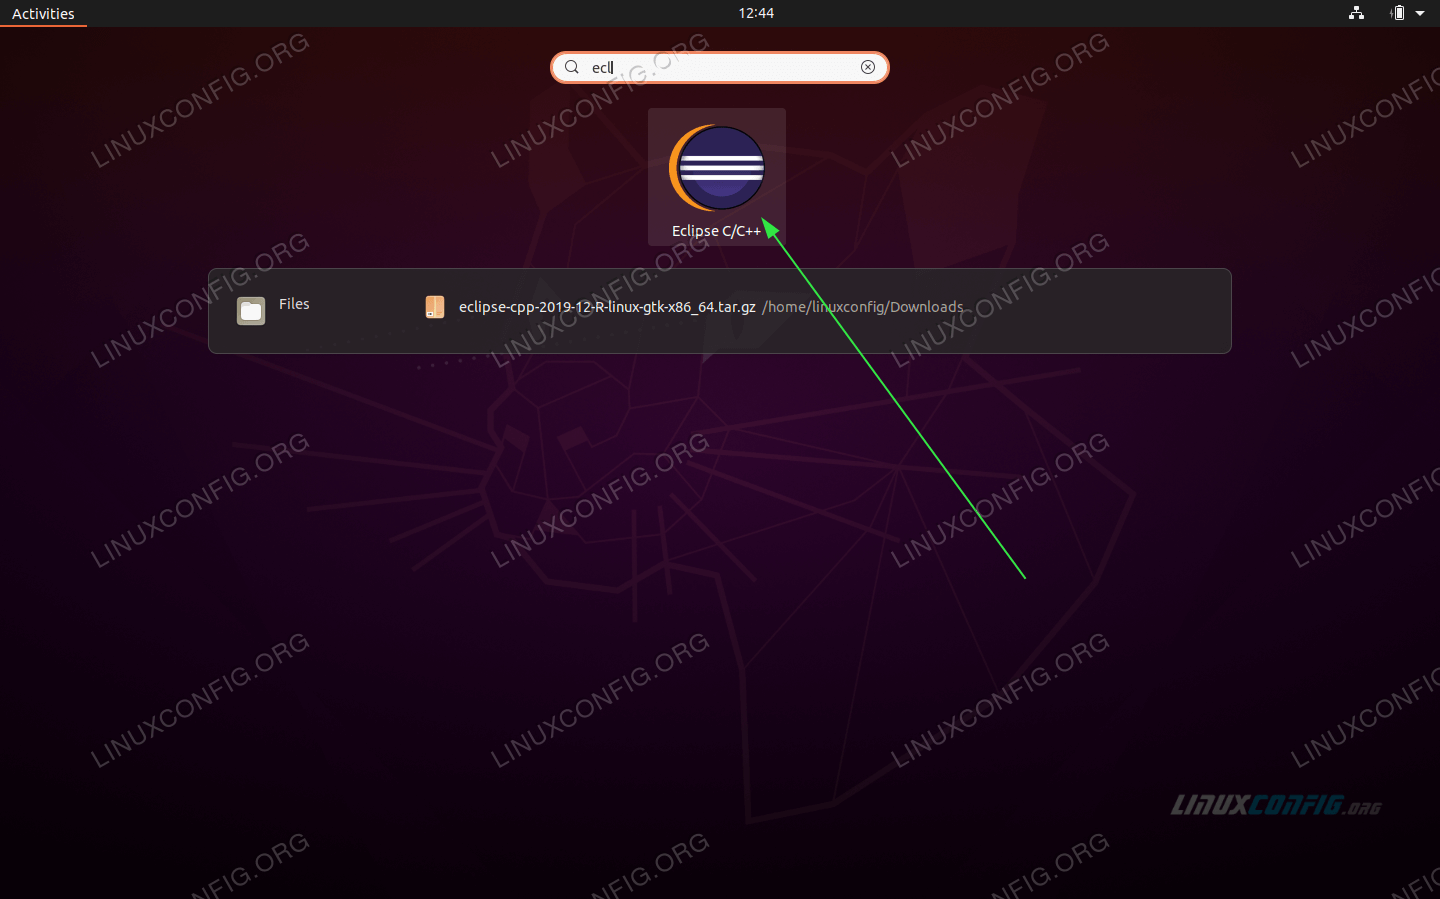 start the the Eclipse IDE